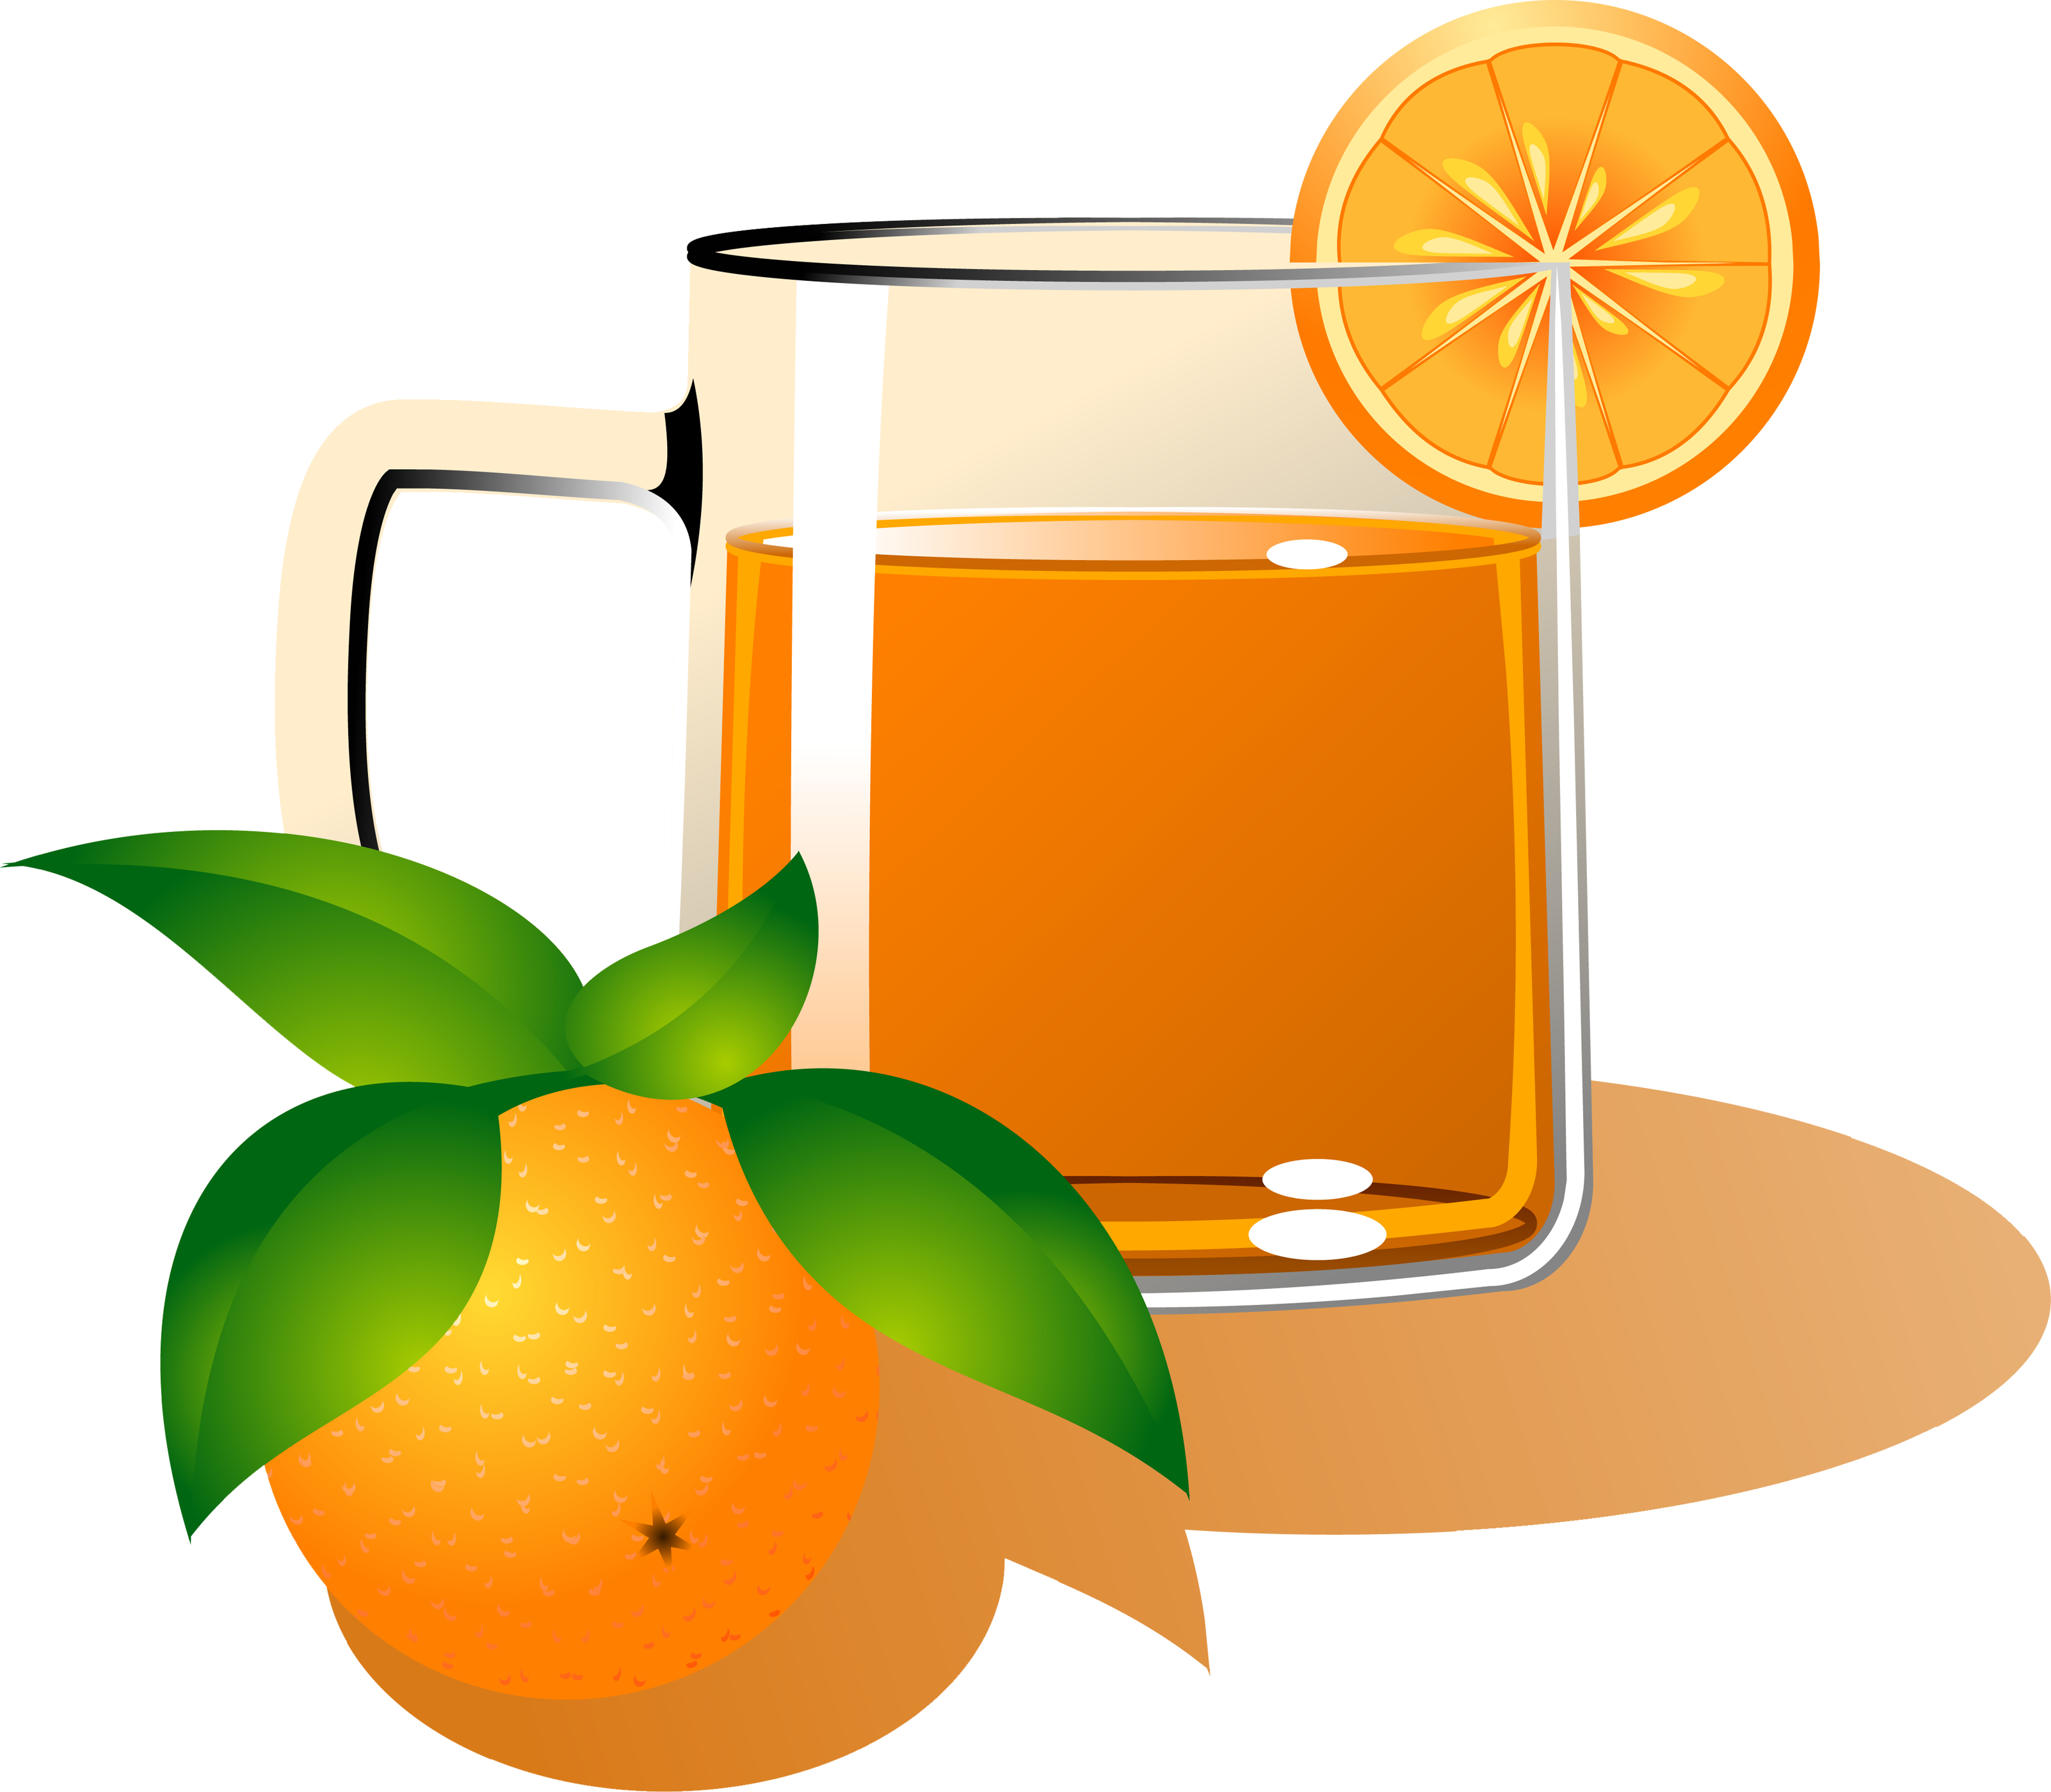 Free Apple Juice Clipart, Download Free Clip Art, Free Clip.